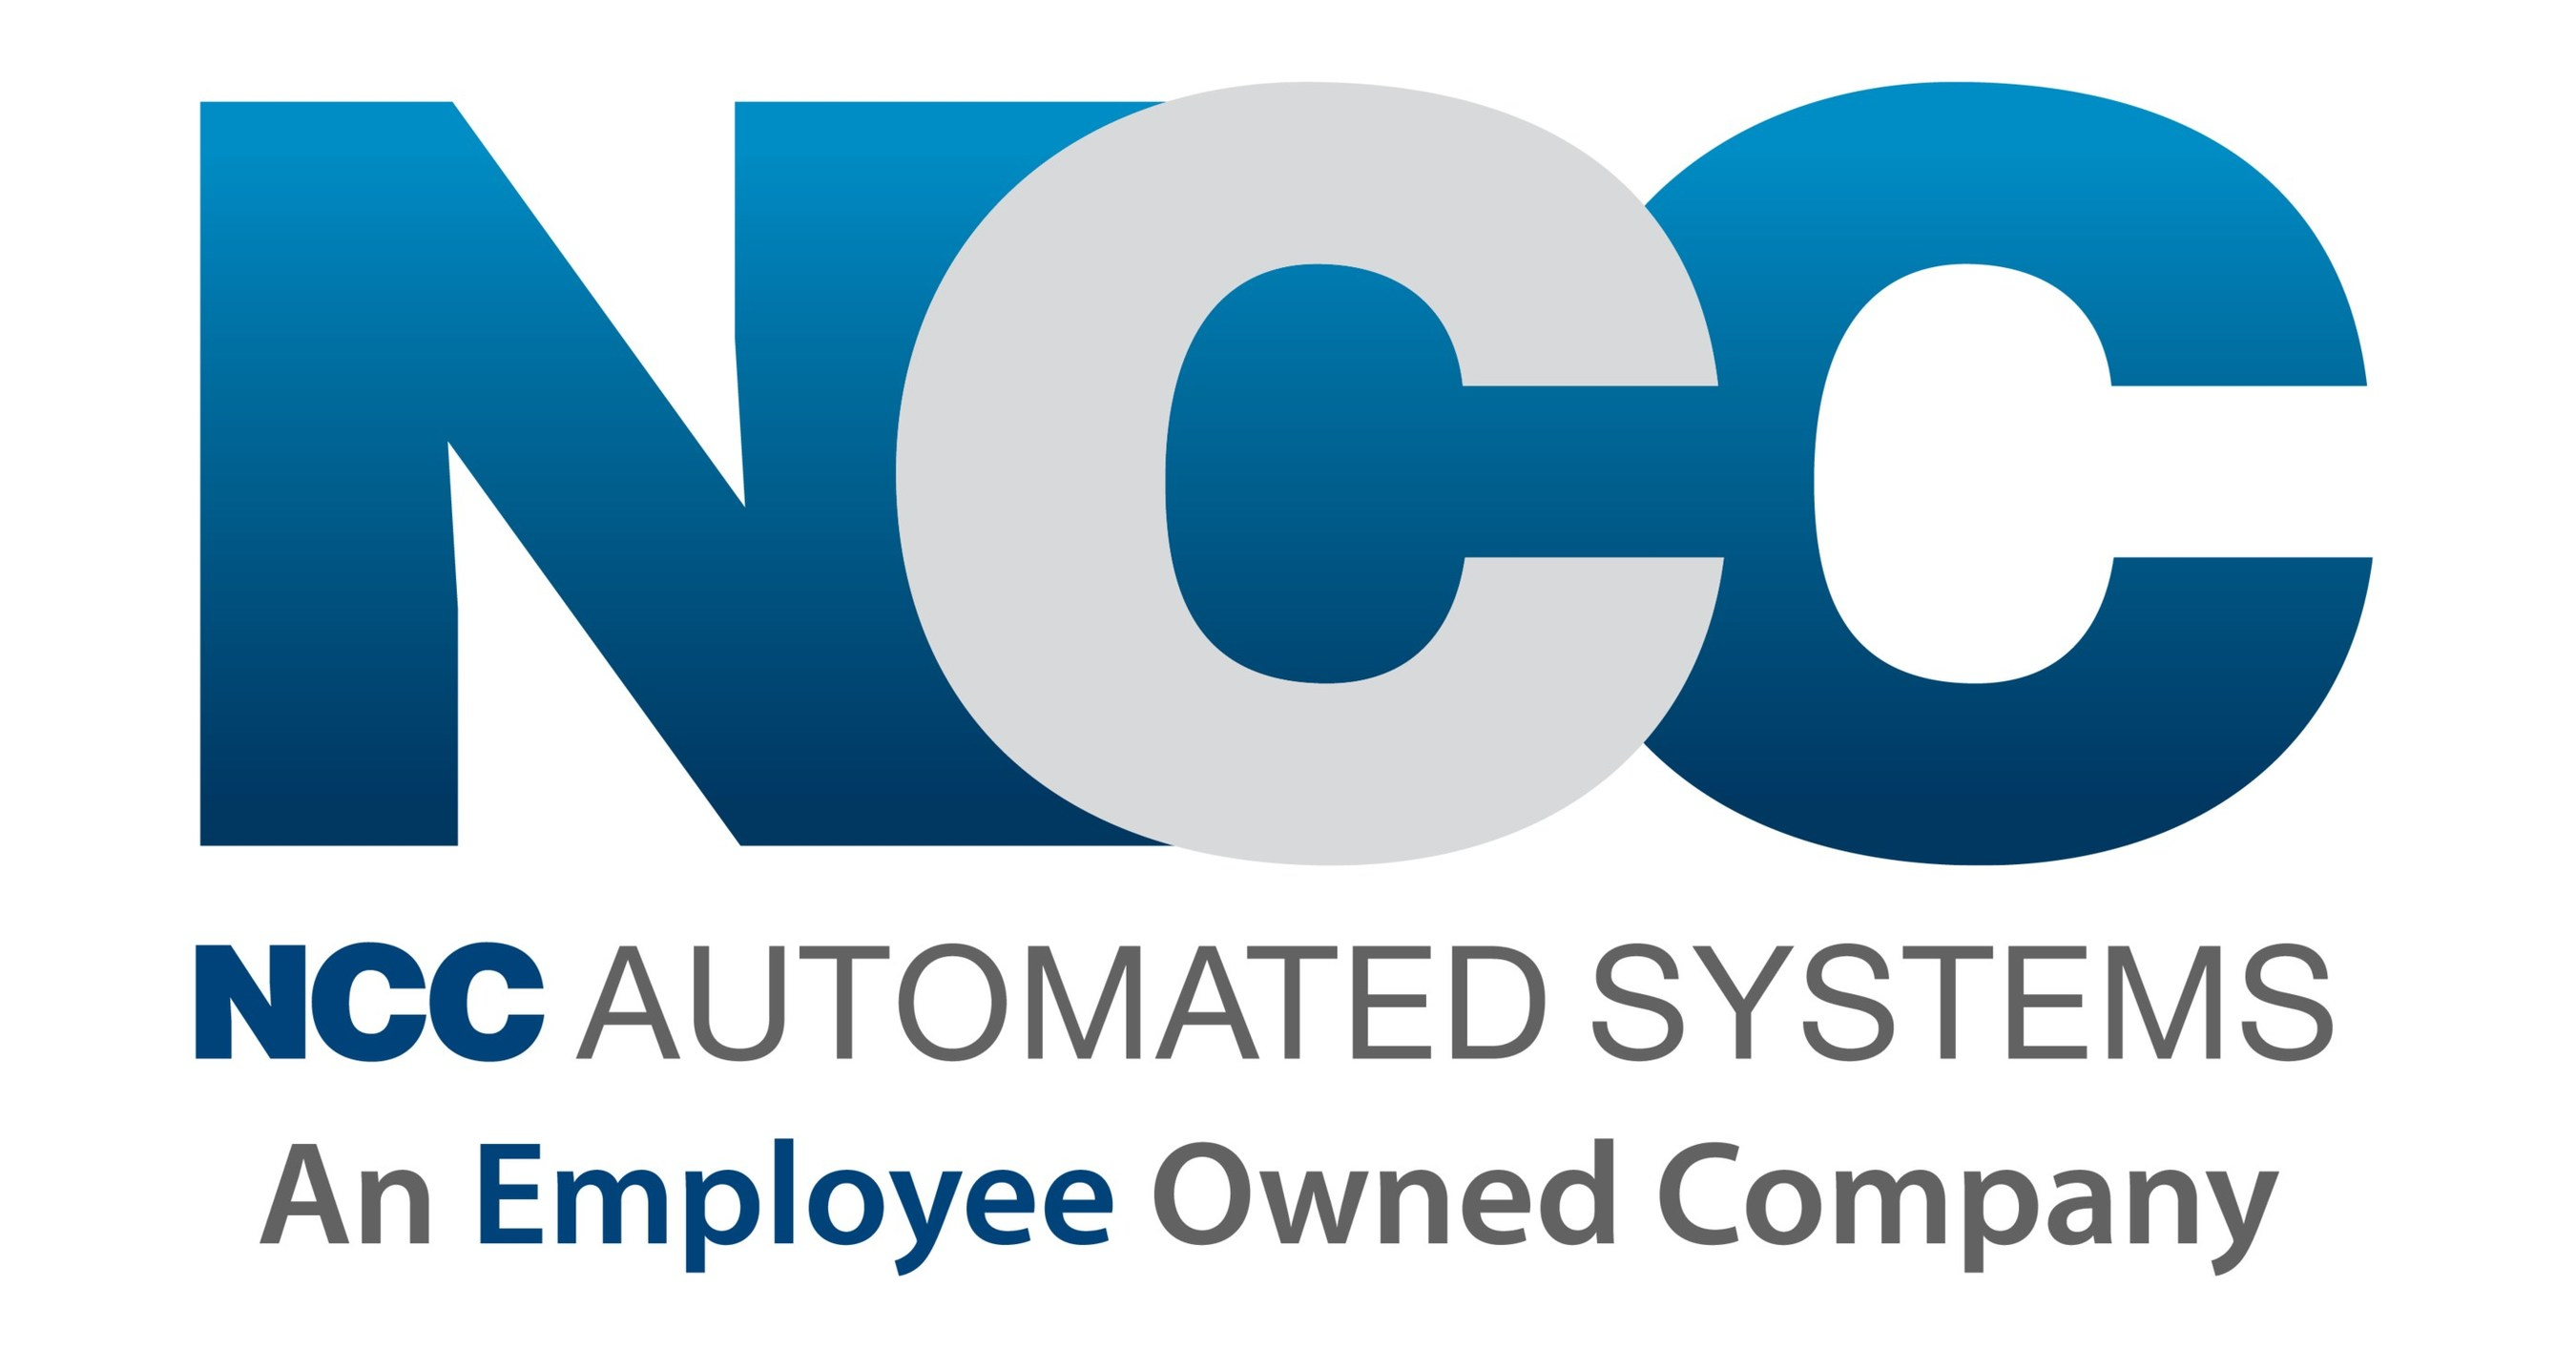 Ncc Automated Systems Announces The Formation Of Employee